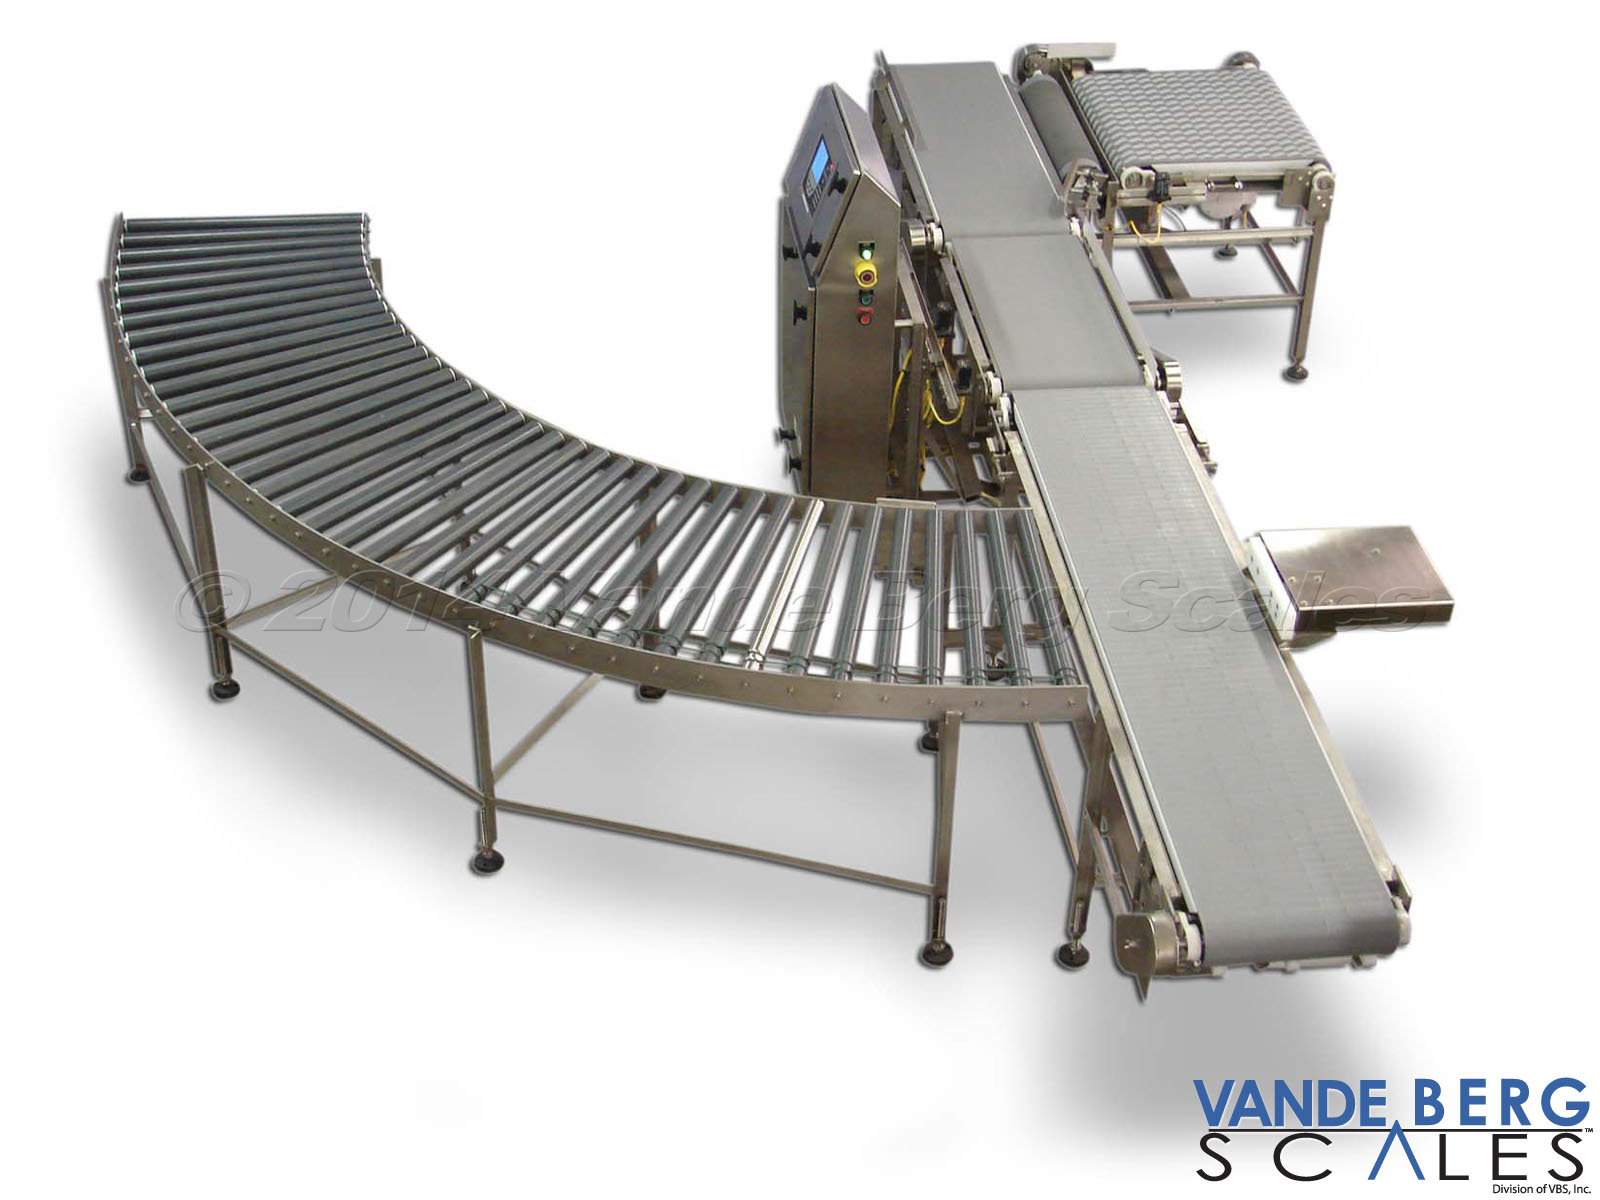 Box conveyor system with checkweigher, divert and gravity roller conveyor